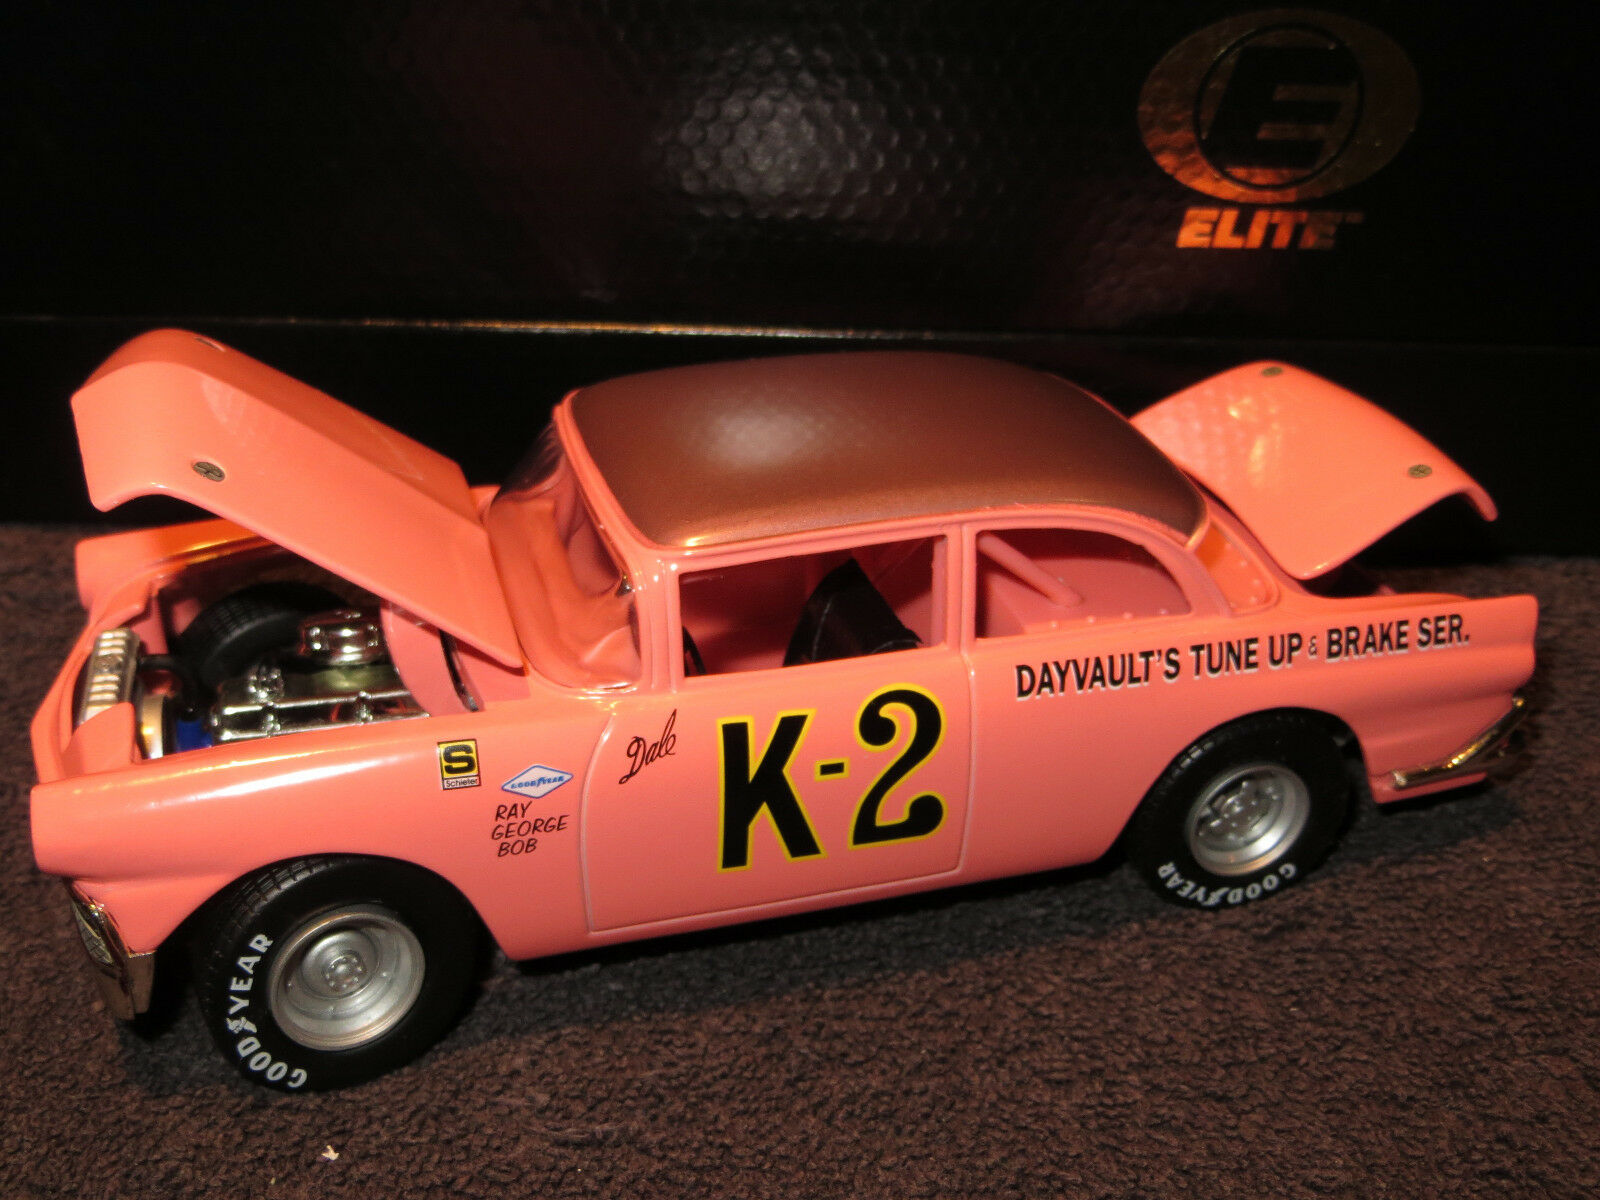 Dale Earnhardt K-2 1956 Ford Ford Ford Elite 1 24 Action RCCA  10,000 NEW gold Coin 7a09a2